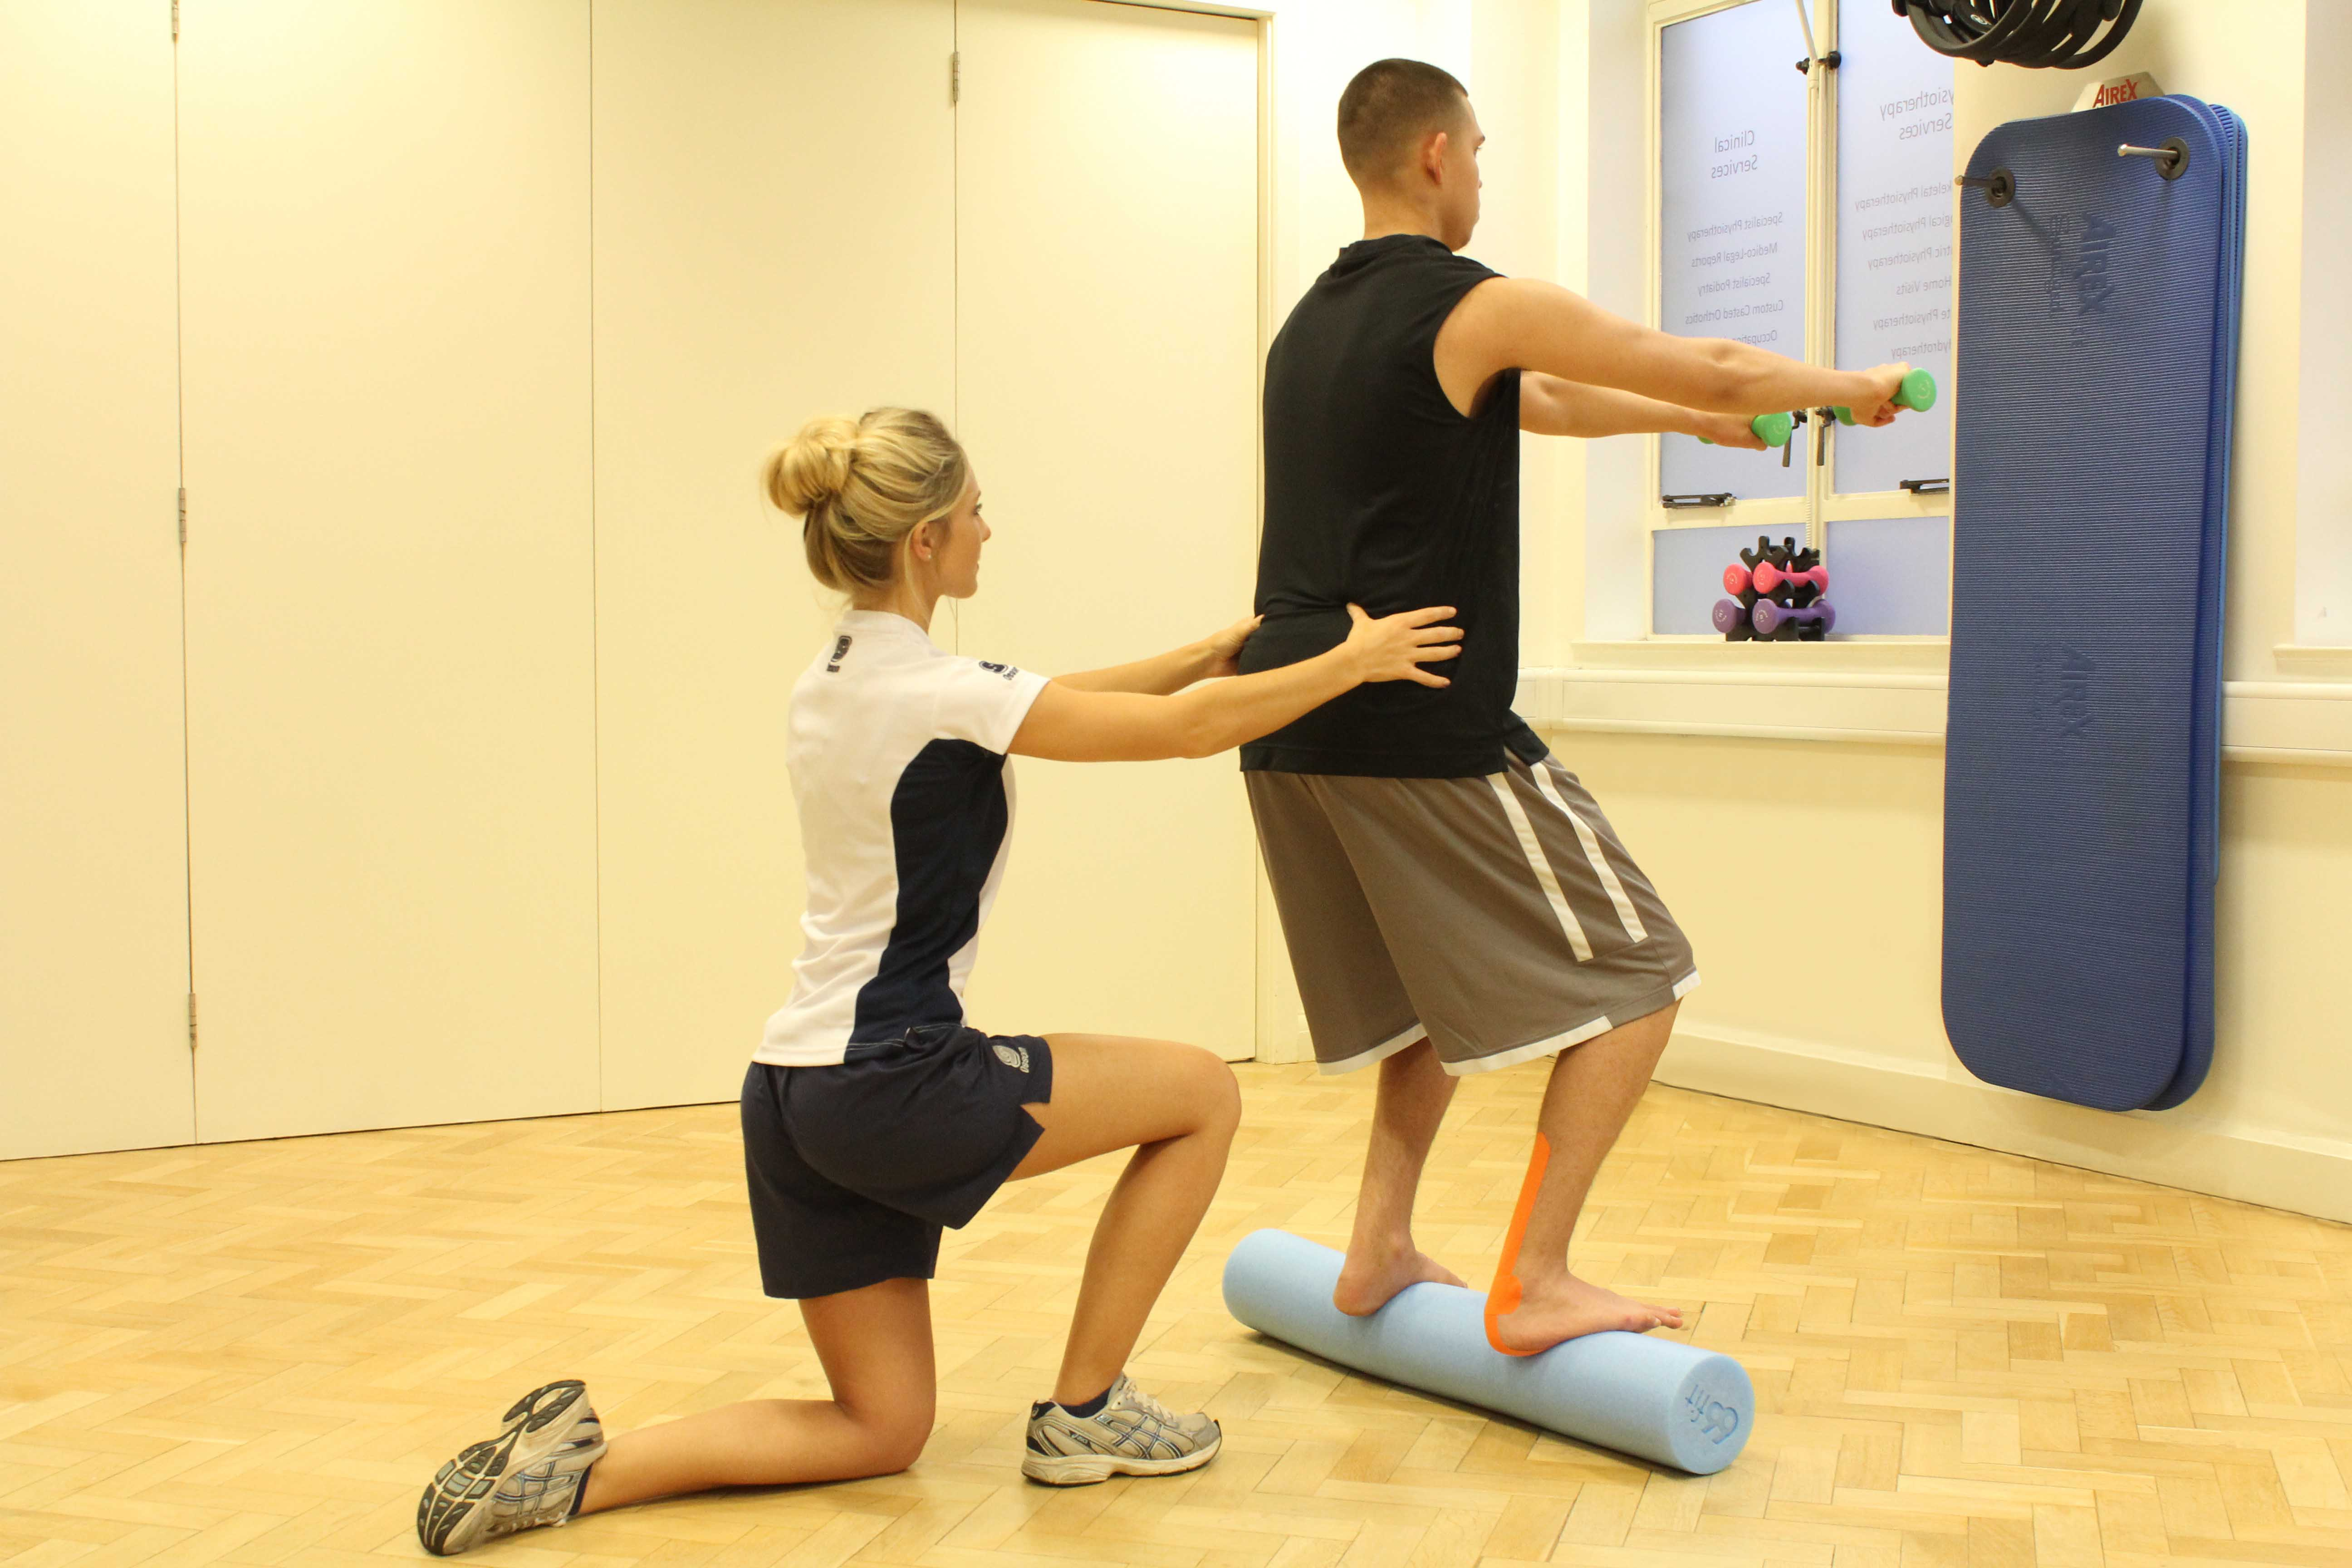 Ankle stability exercises, with supportive tape, supervised by therapist